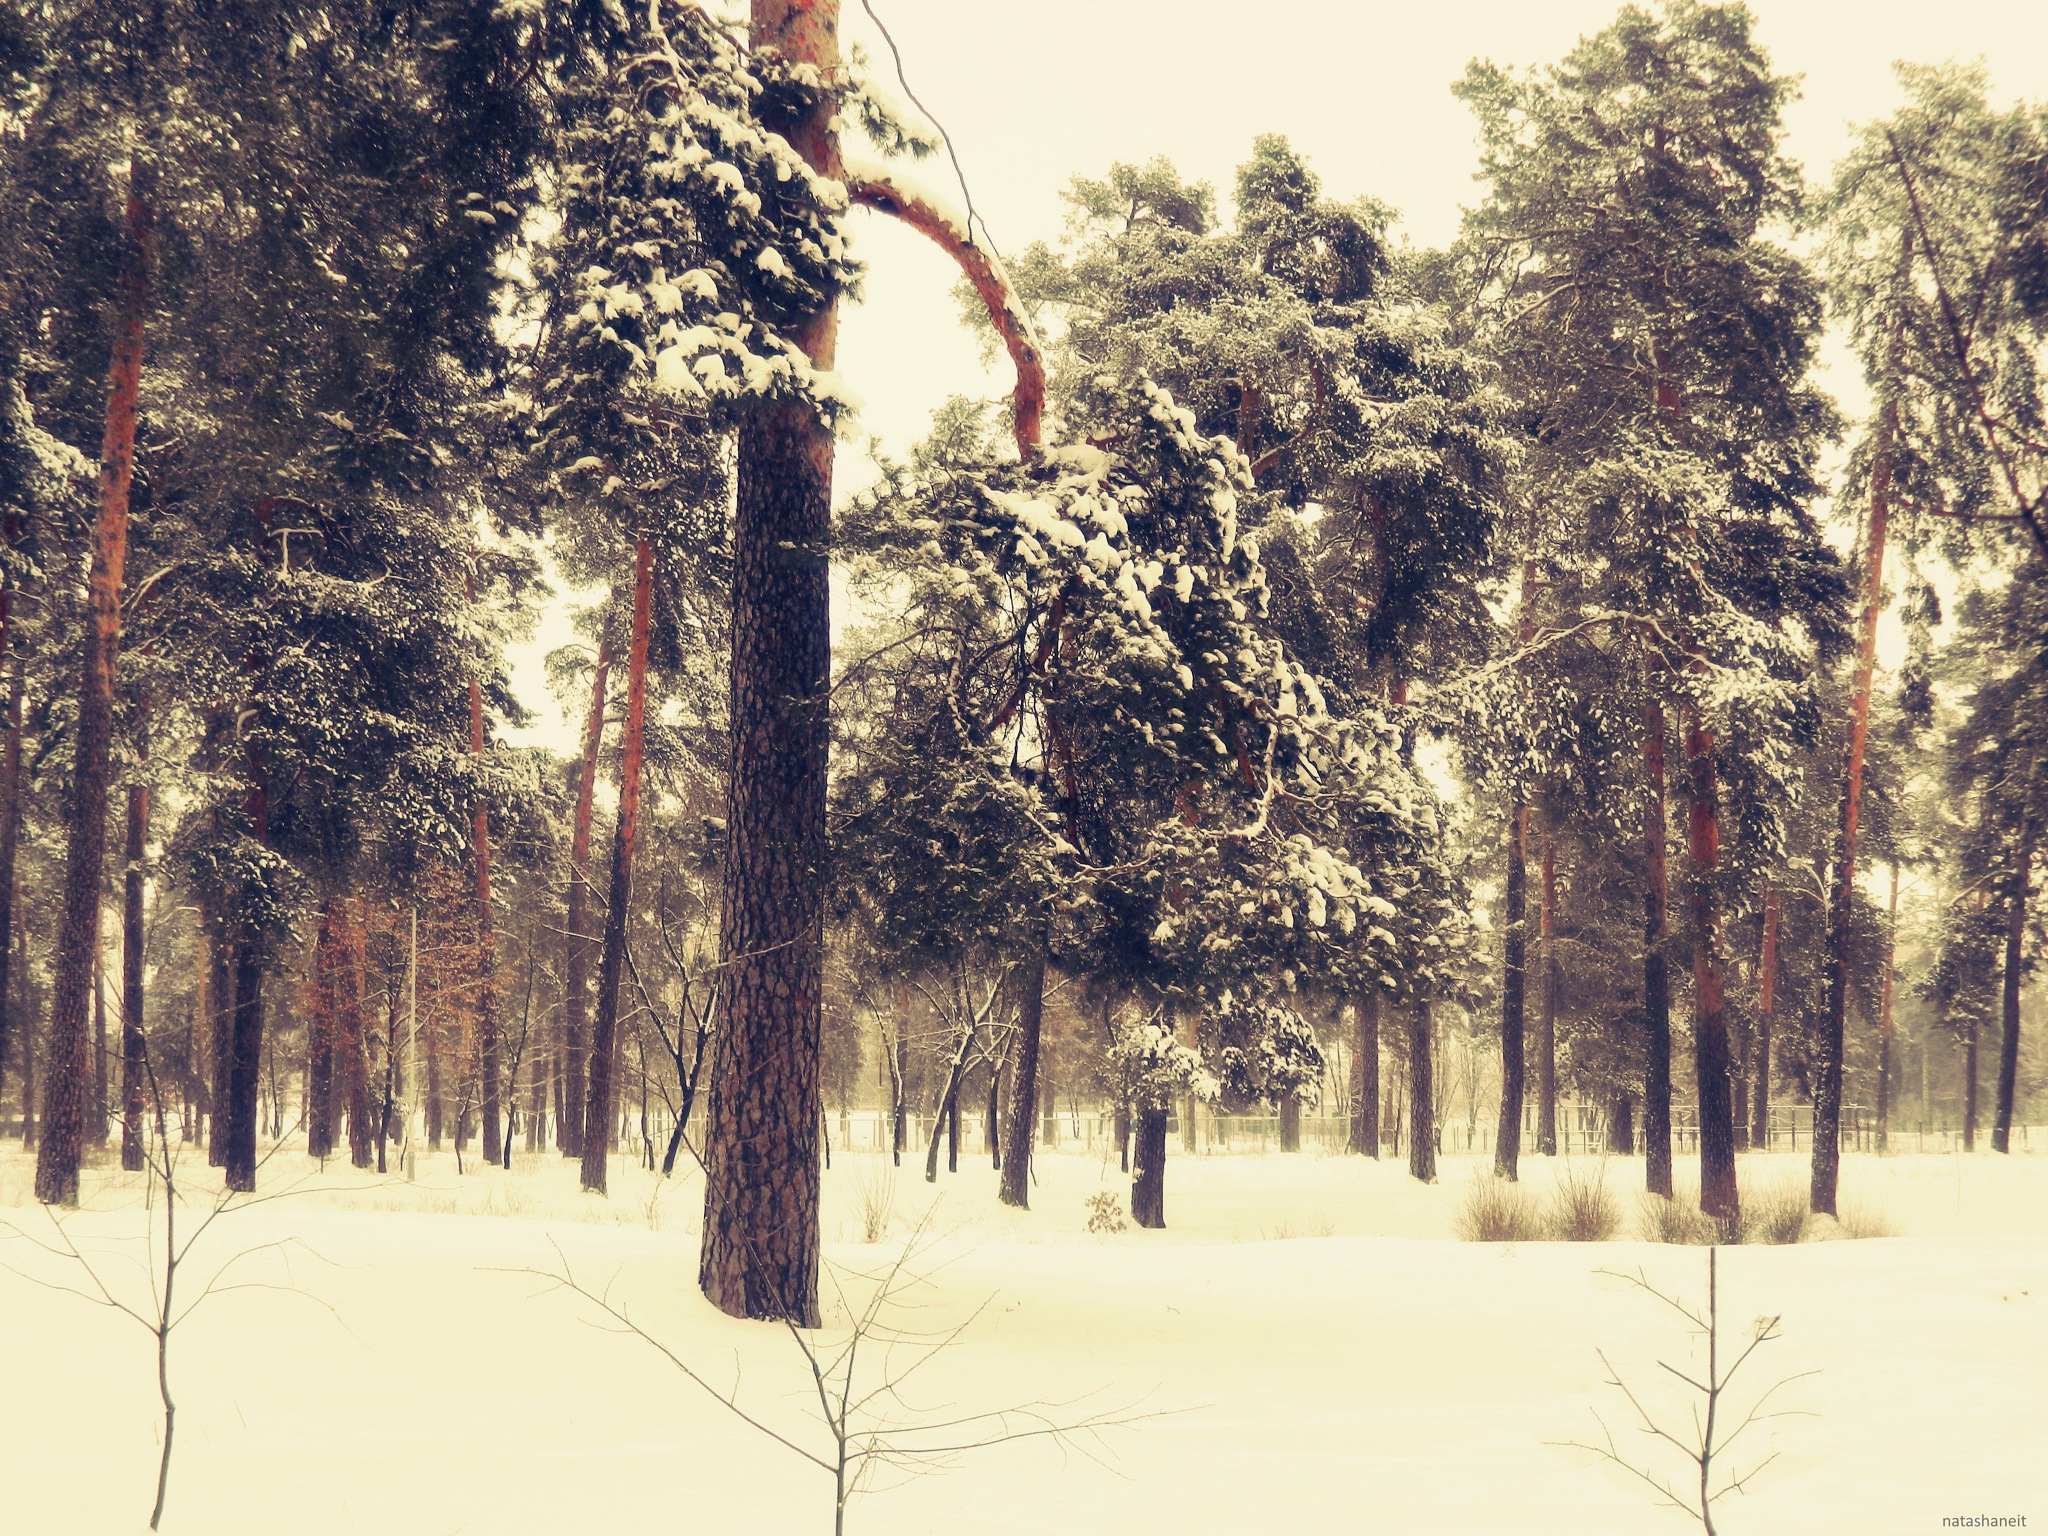 Snowy day in the forest-park by natashaneit